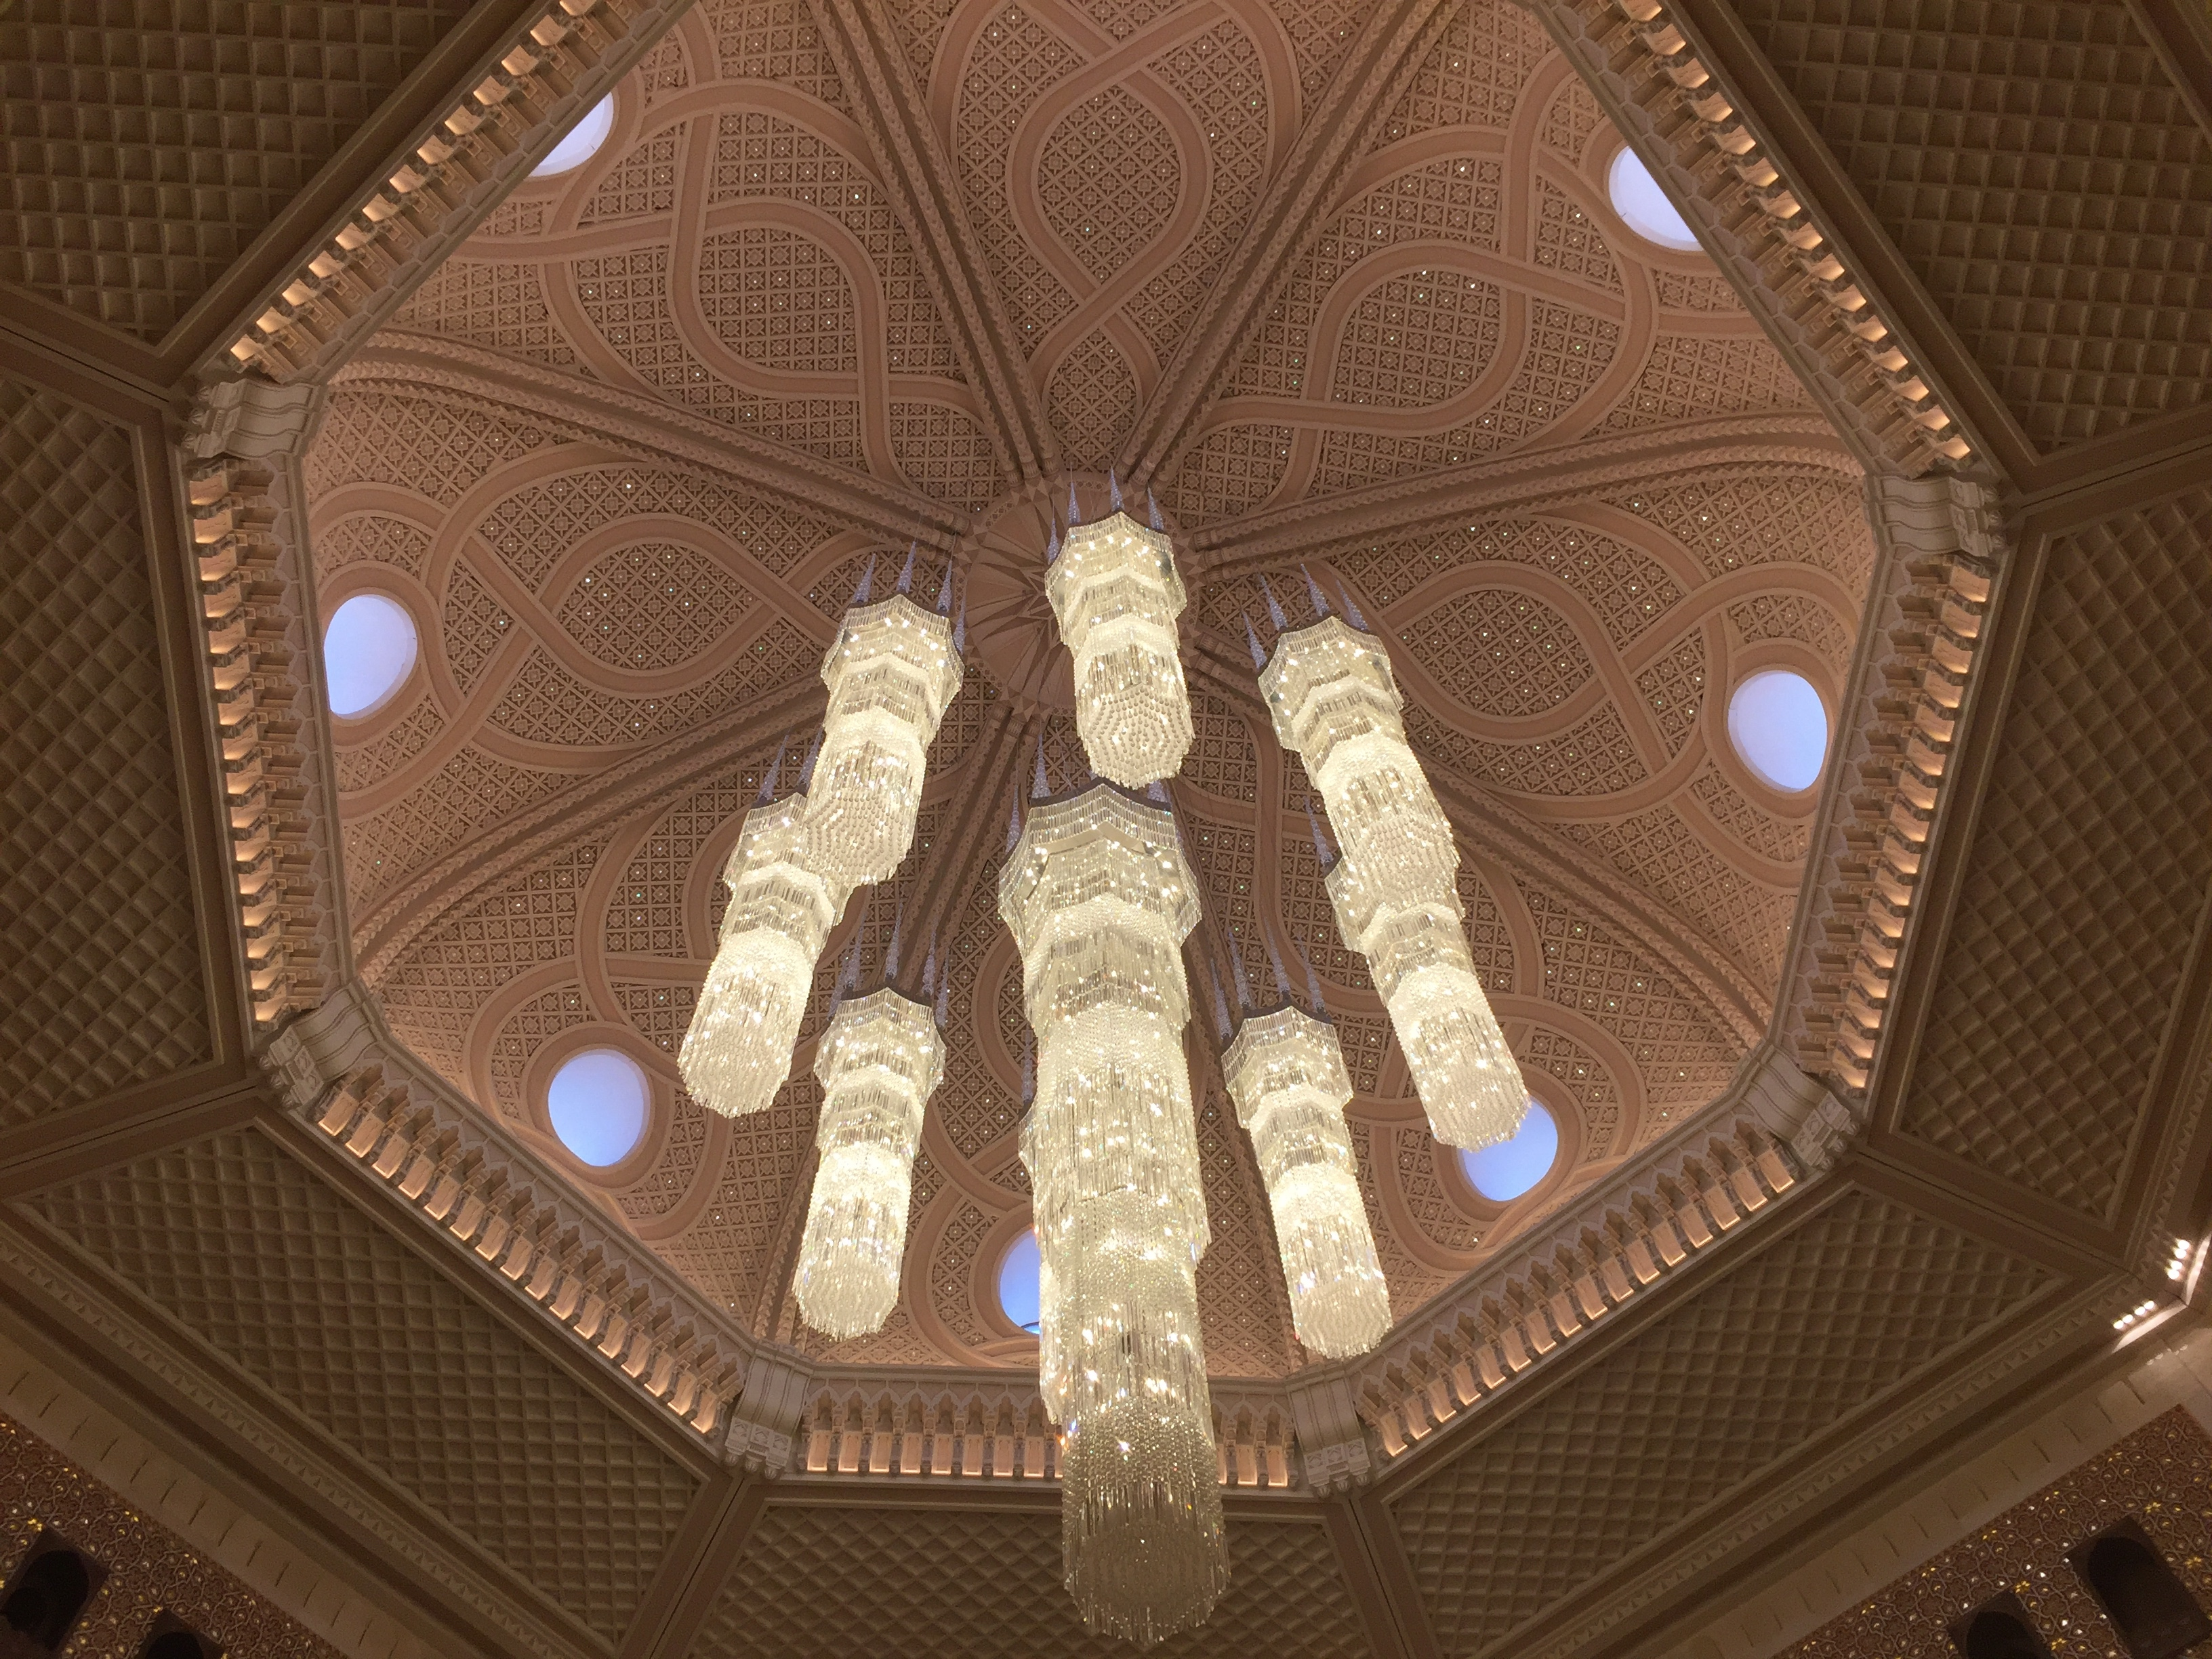 The famous crystal chandeliers - Al Bustan Palace Ritz Carlton Muscat